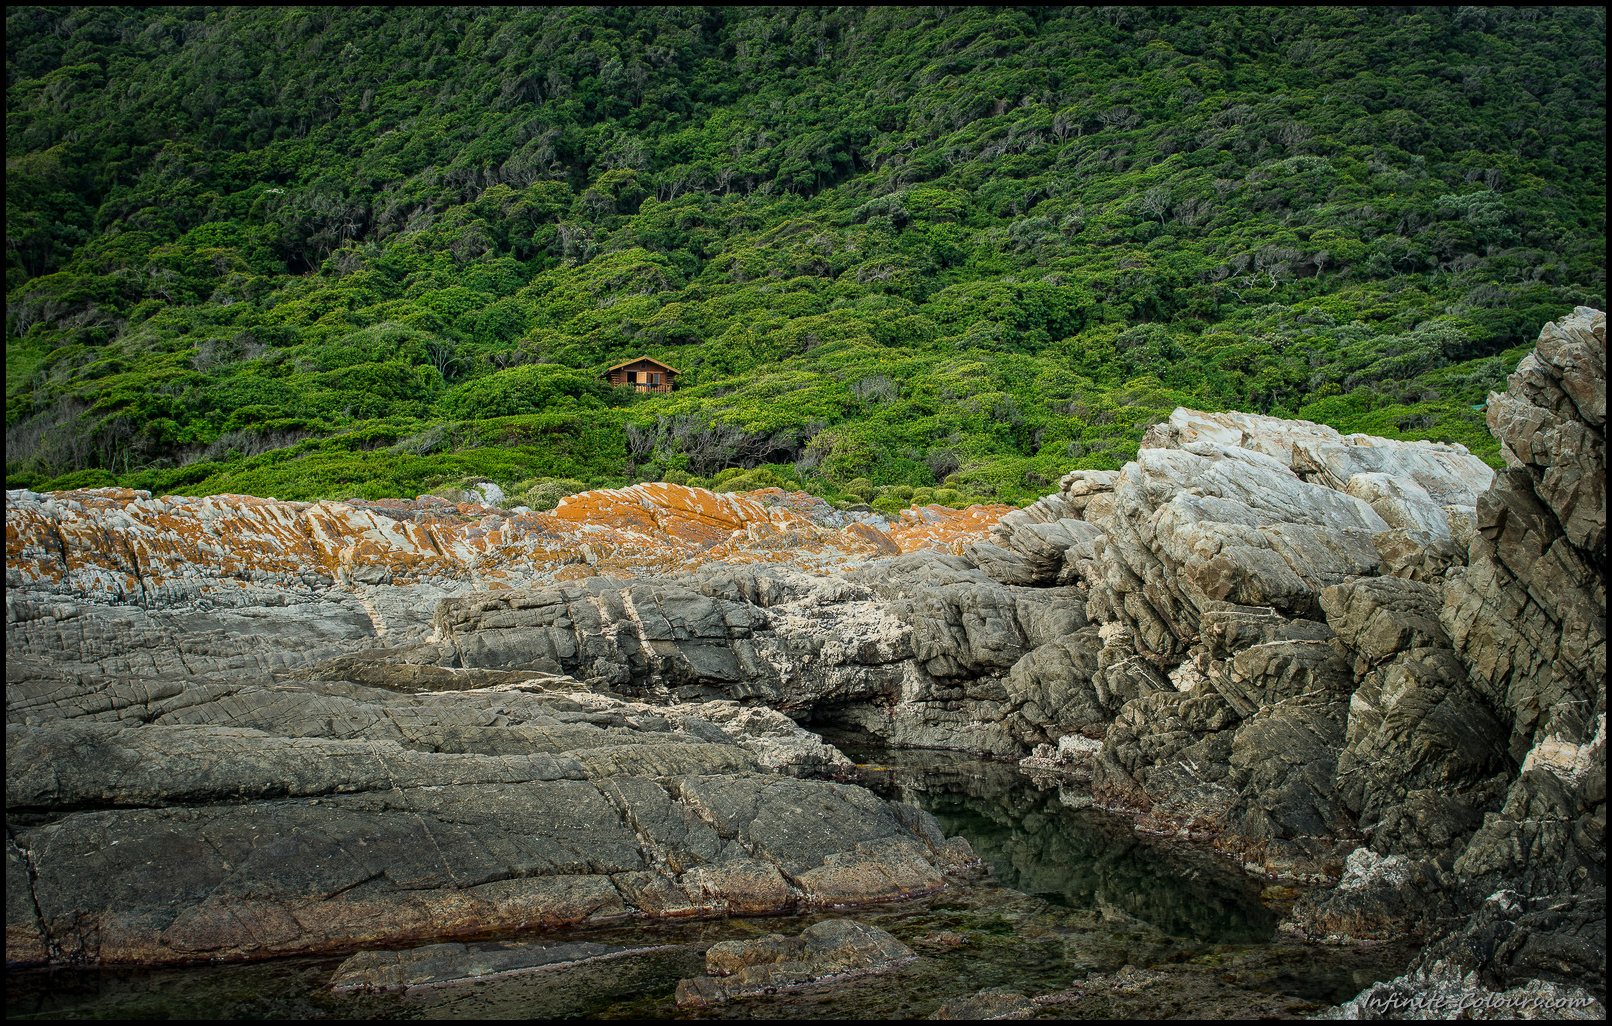 Ngubu huts: rockpools to cool down are only a stroll down the path